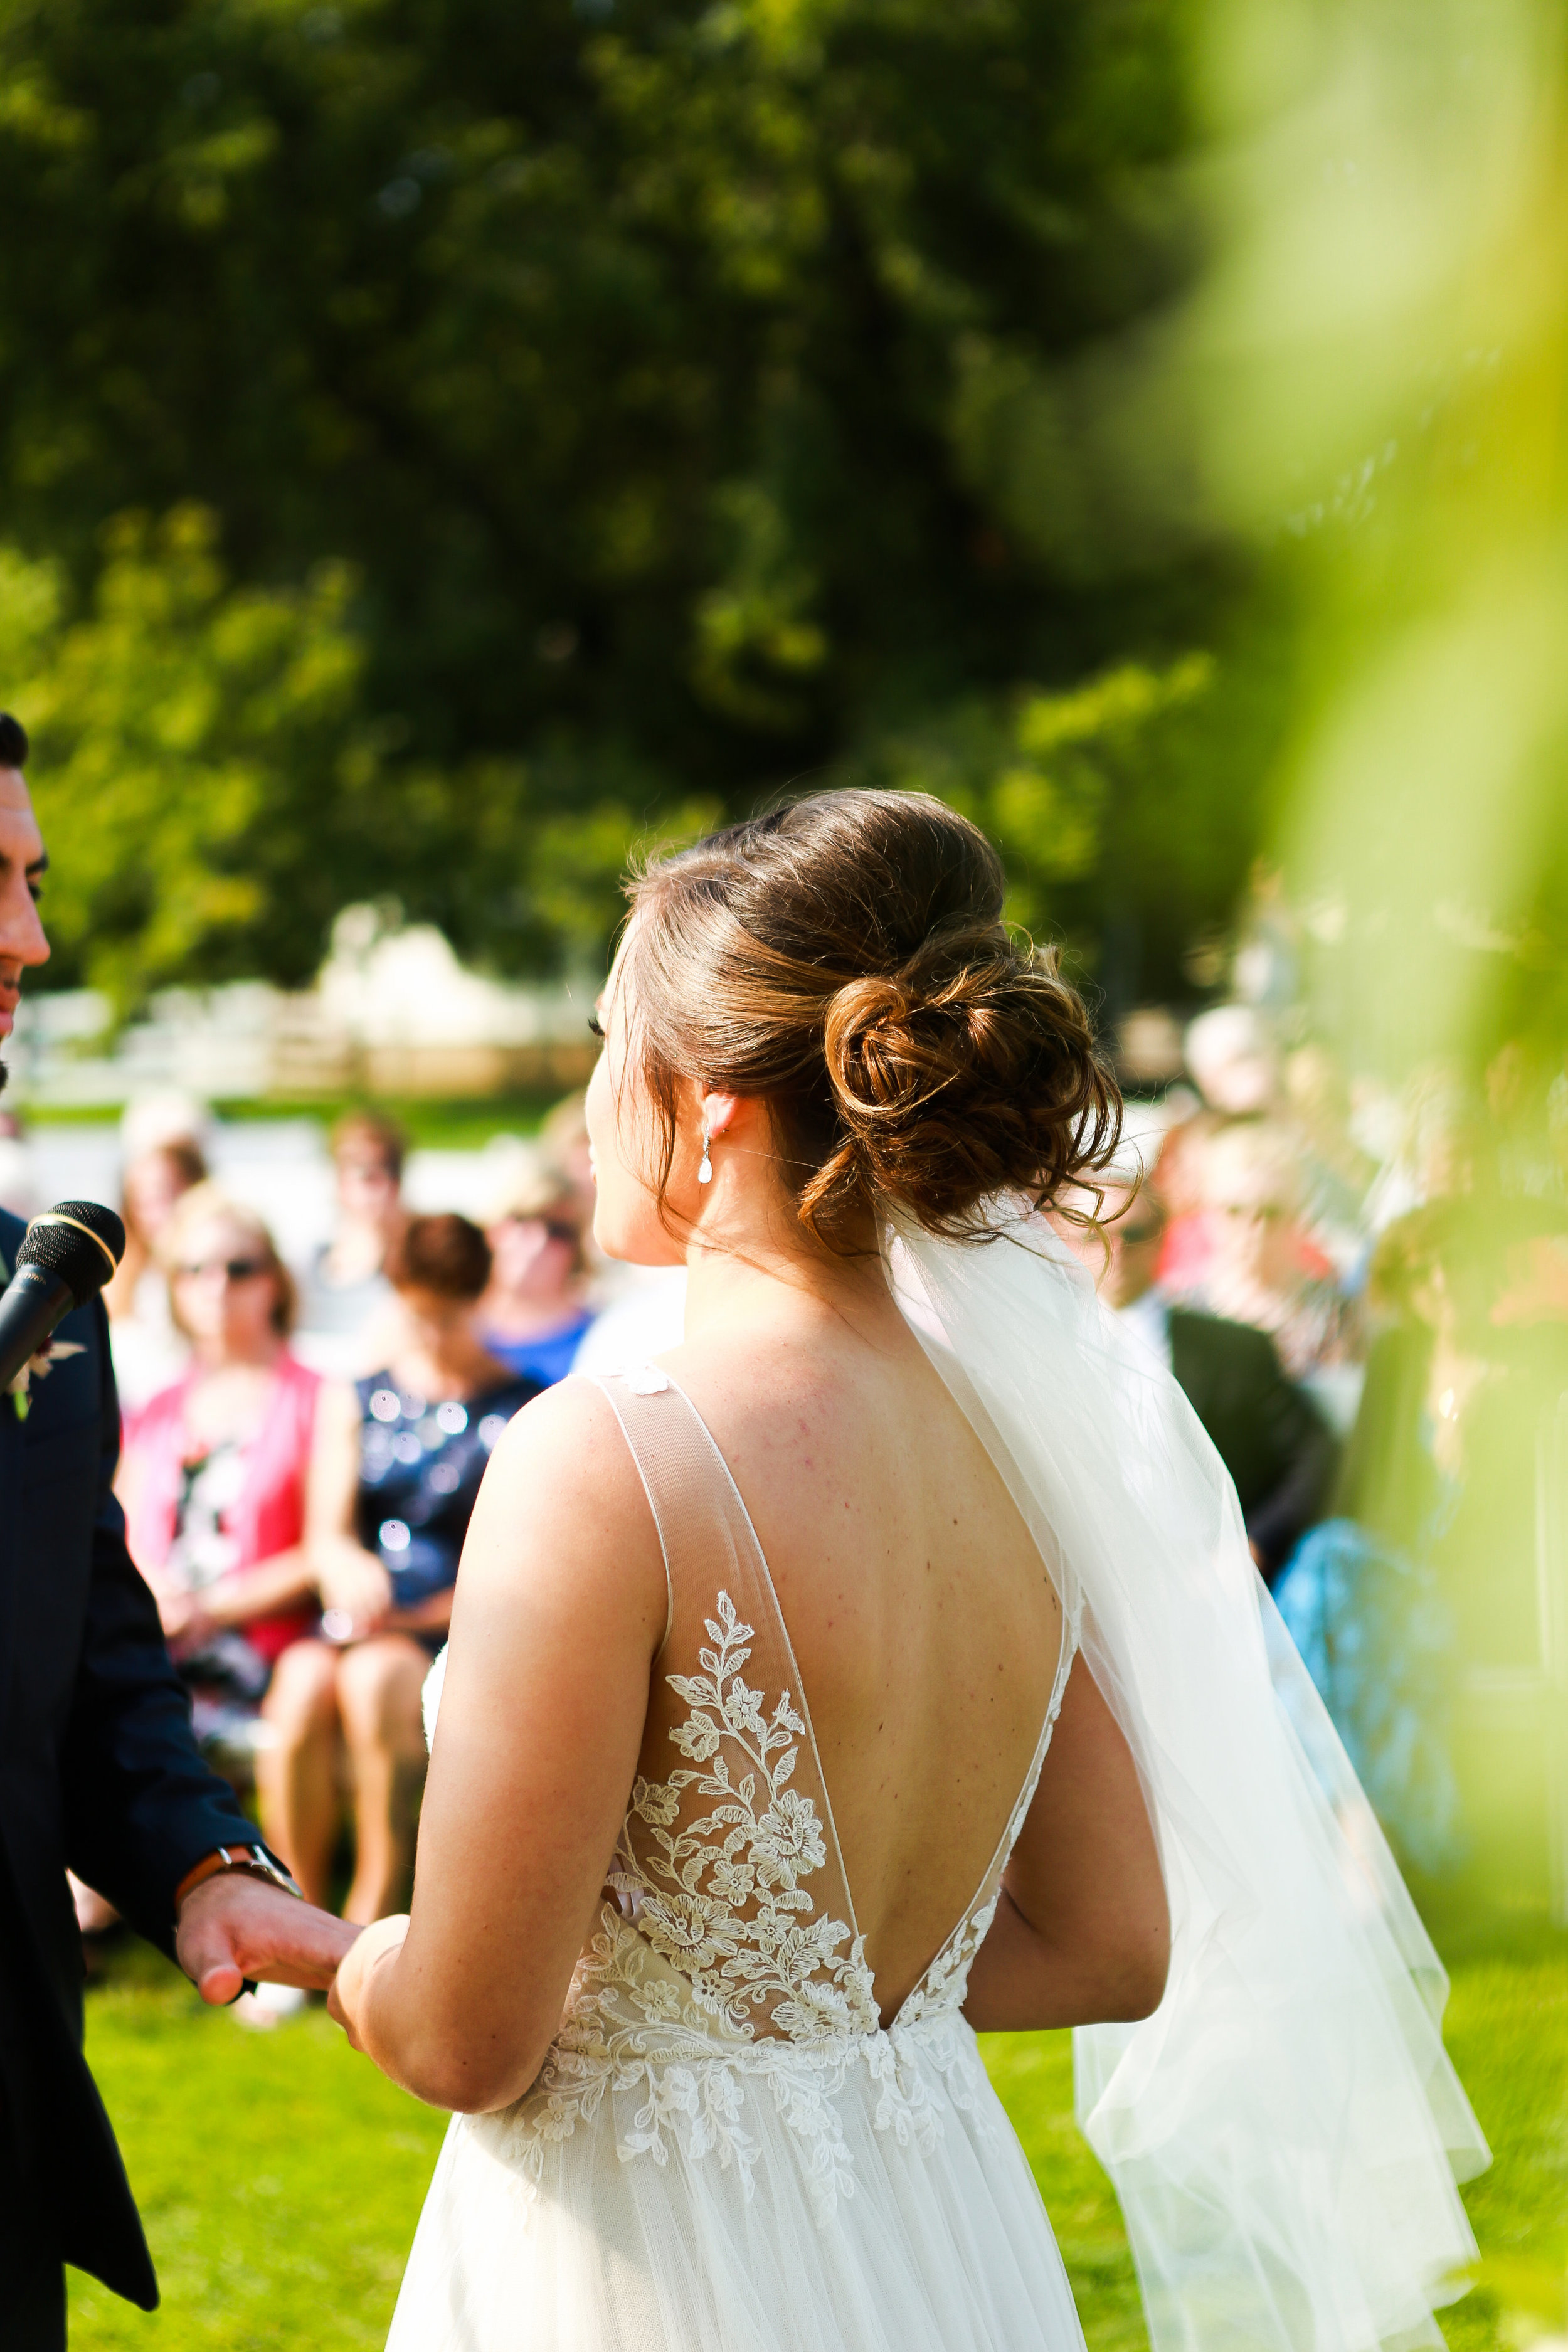 Jenna Kevin Wedding   Sixpence Events day of coordinating   Hannah Schmitt Photography   Legacy Hill Farm   bride reciting her vows